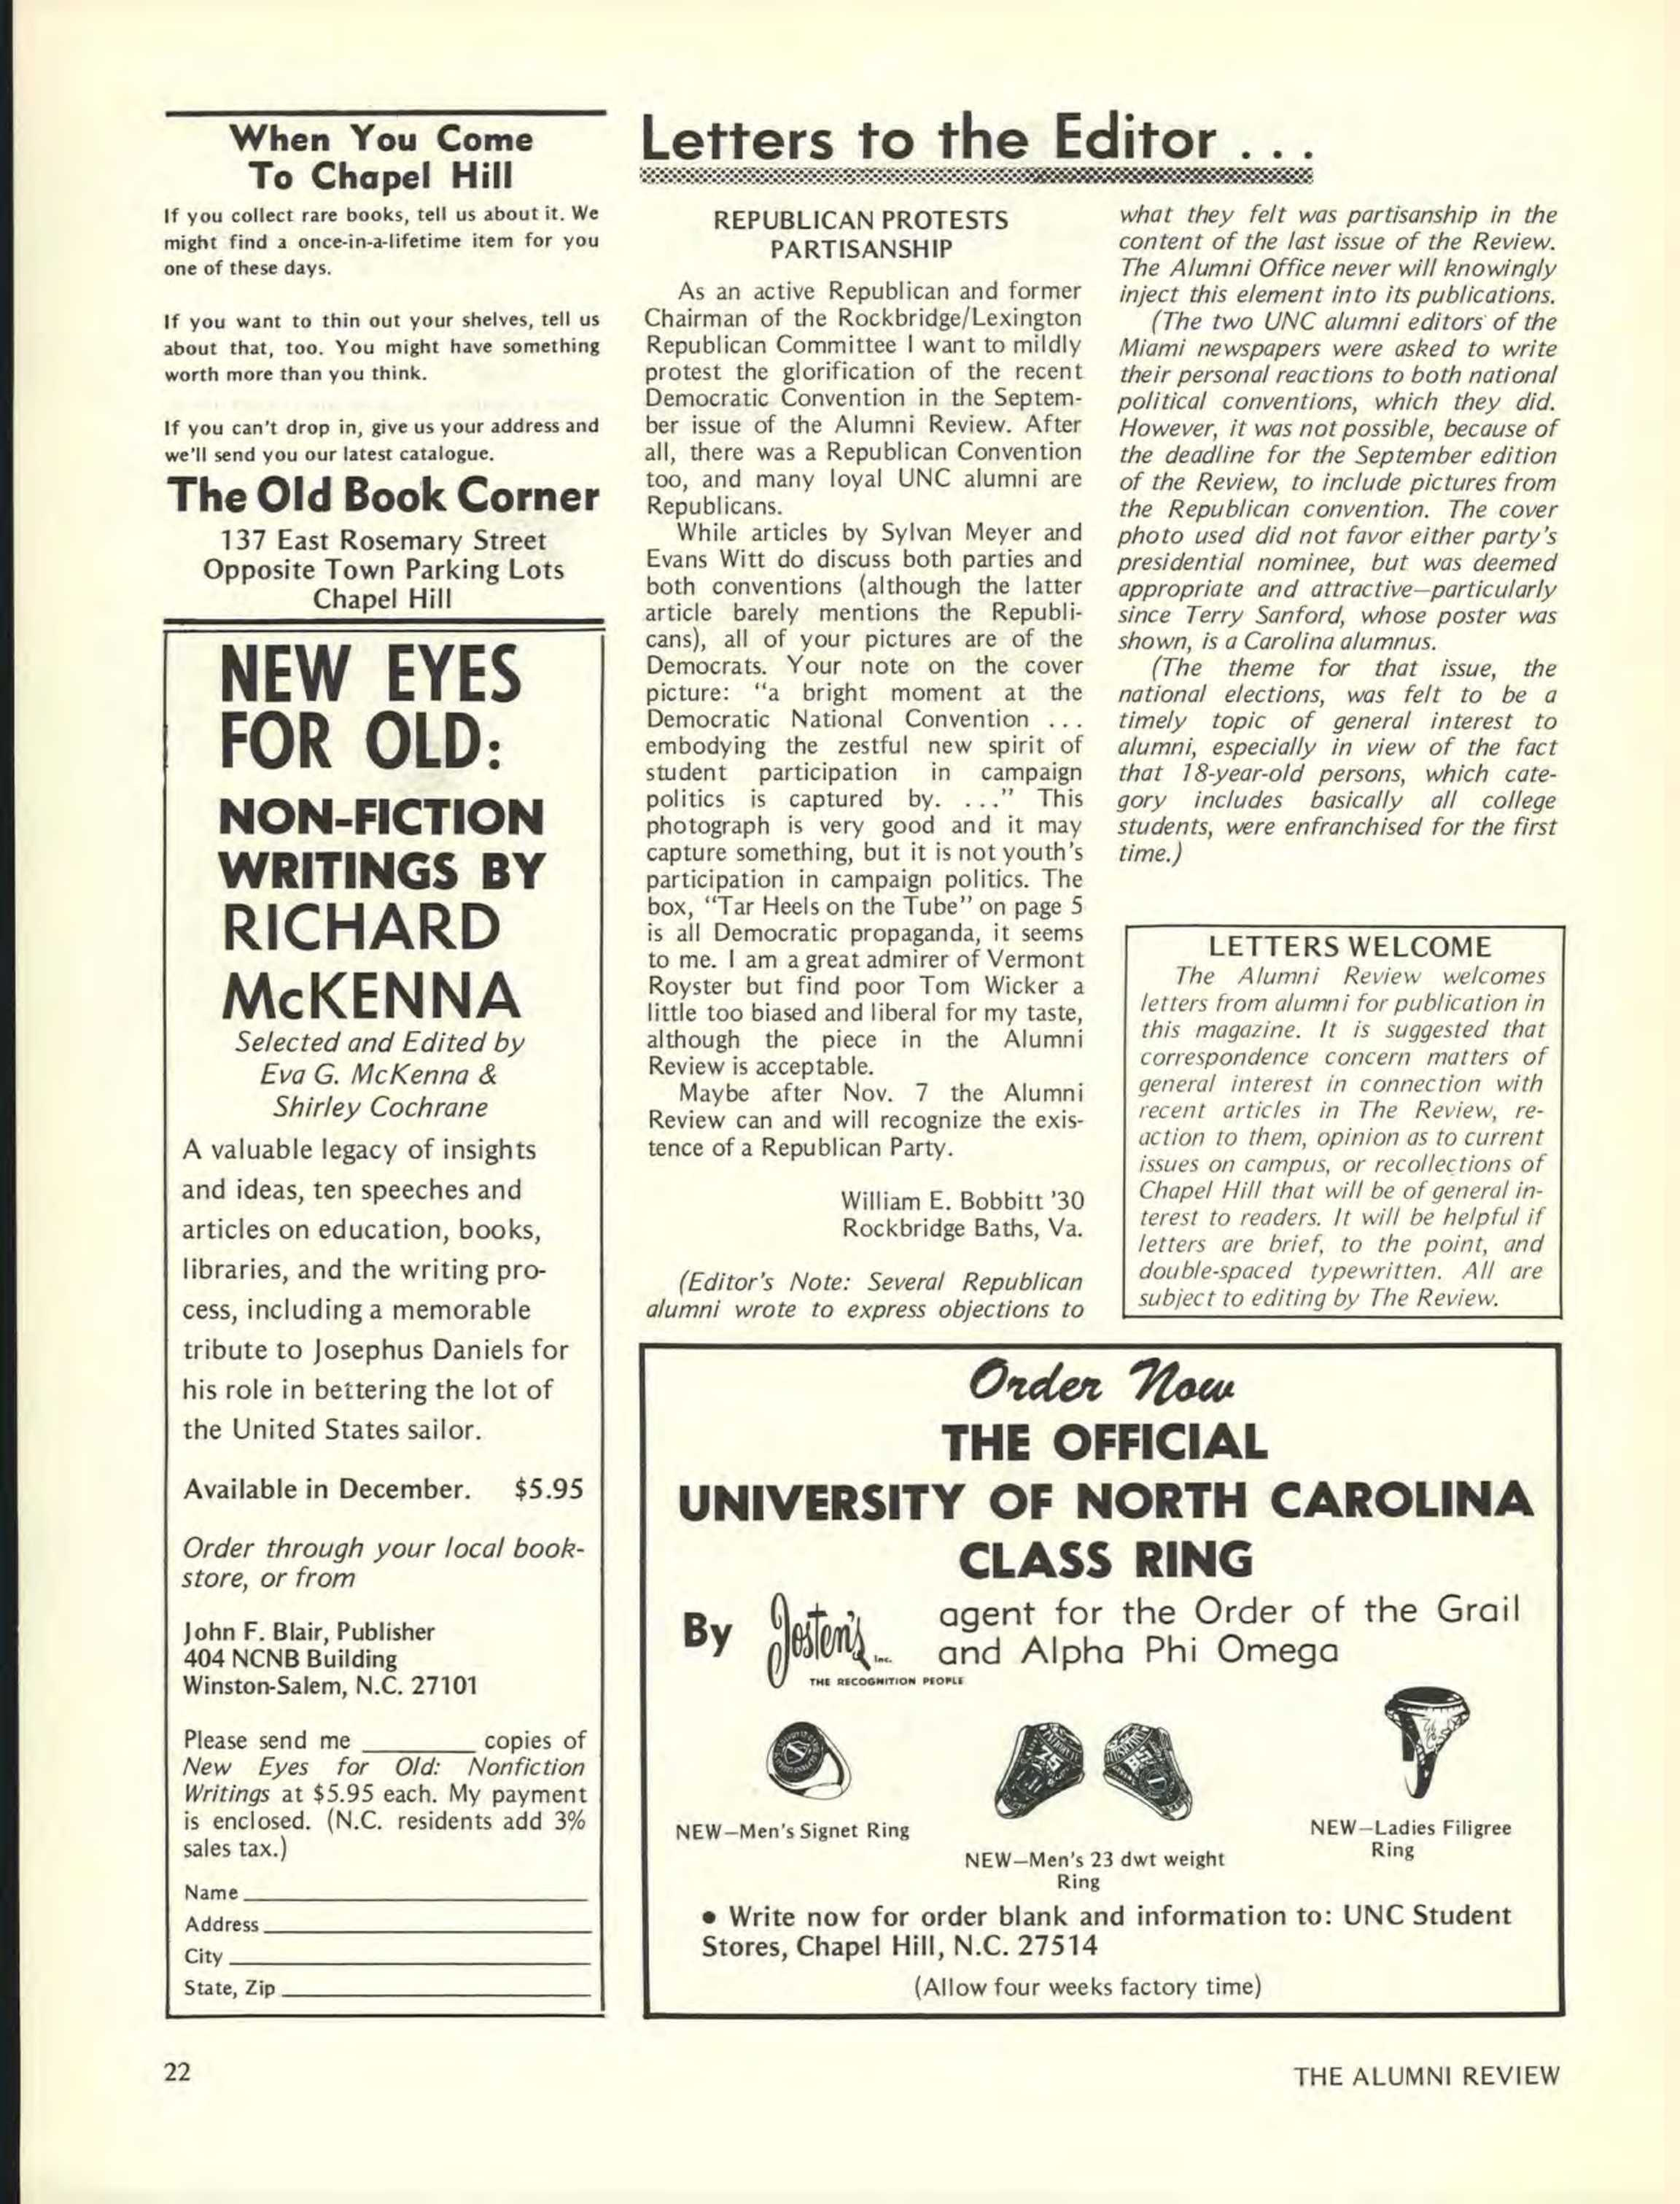 Carolina Alumni Review - November 1972 - page 22